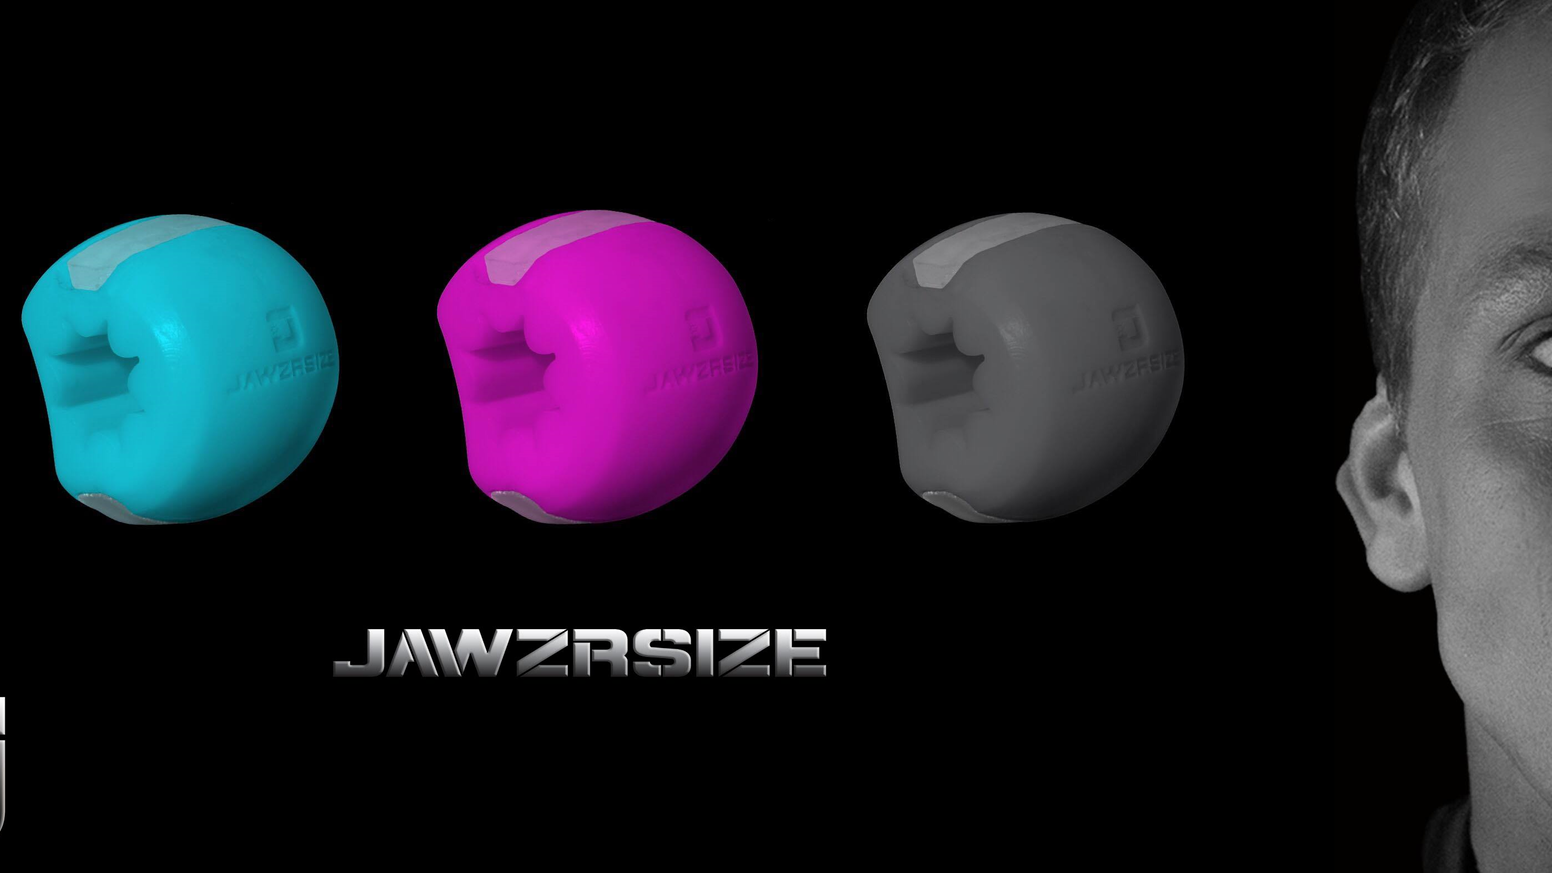 Use Jawzrsize to tone, strengthen your facial and neck muscles, form a well defined jawline, and intensify mind-muscle connection.